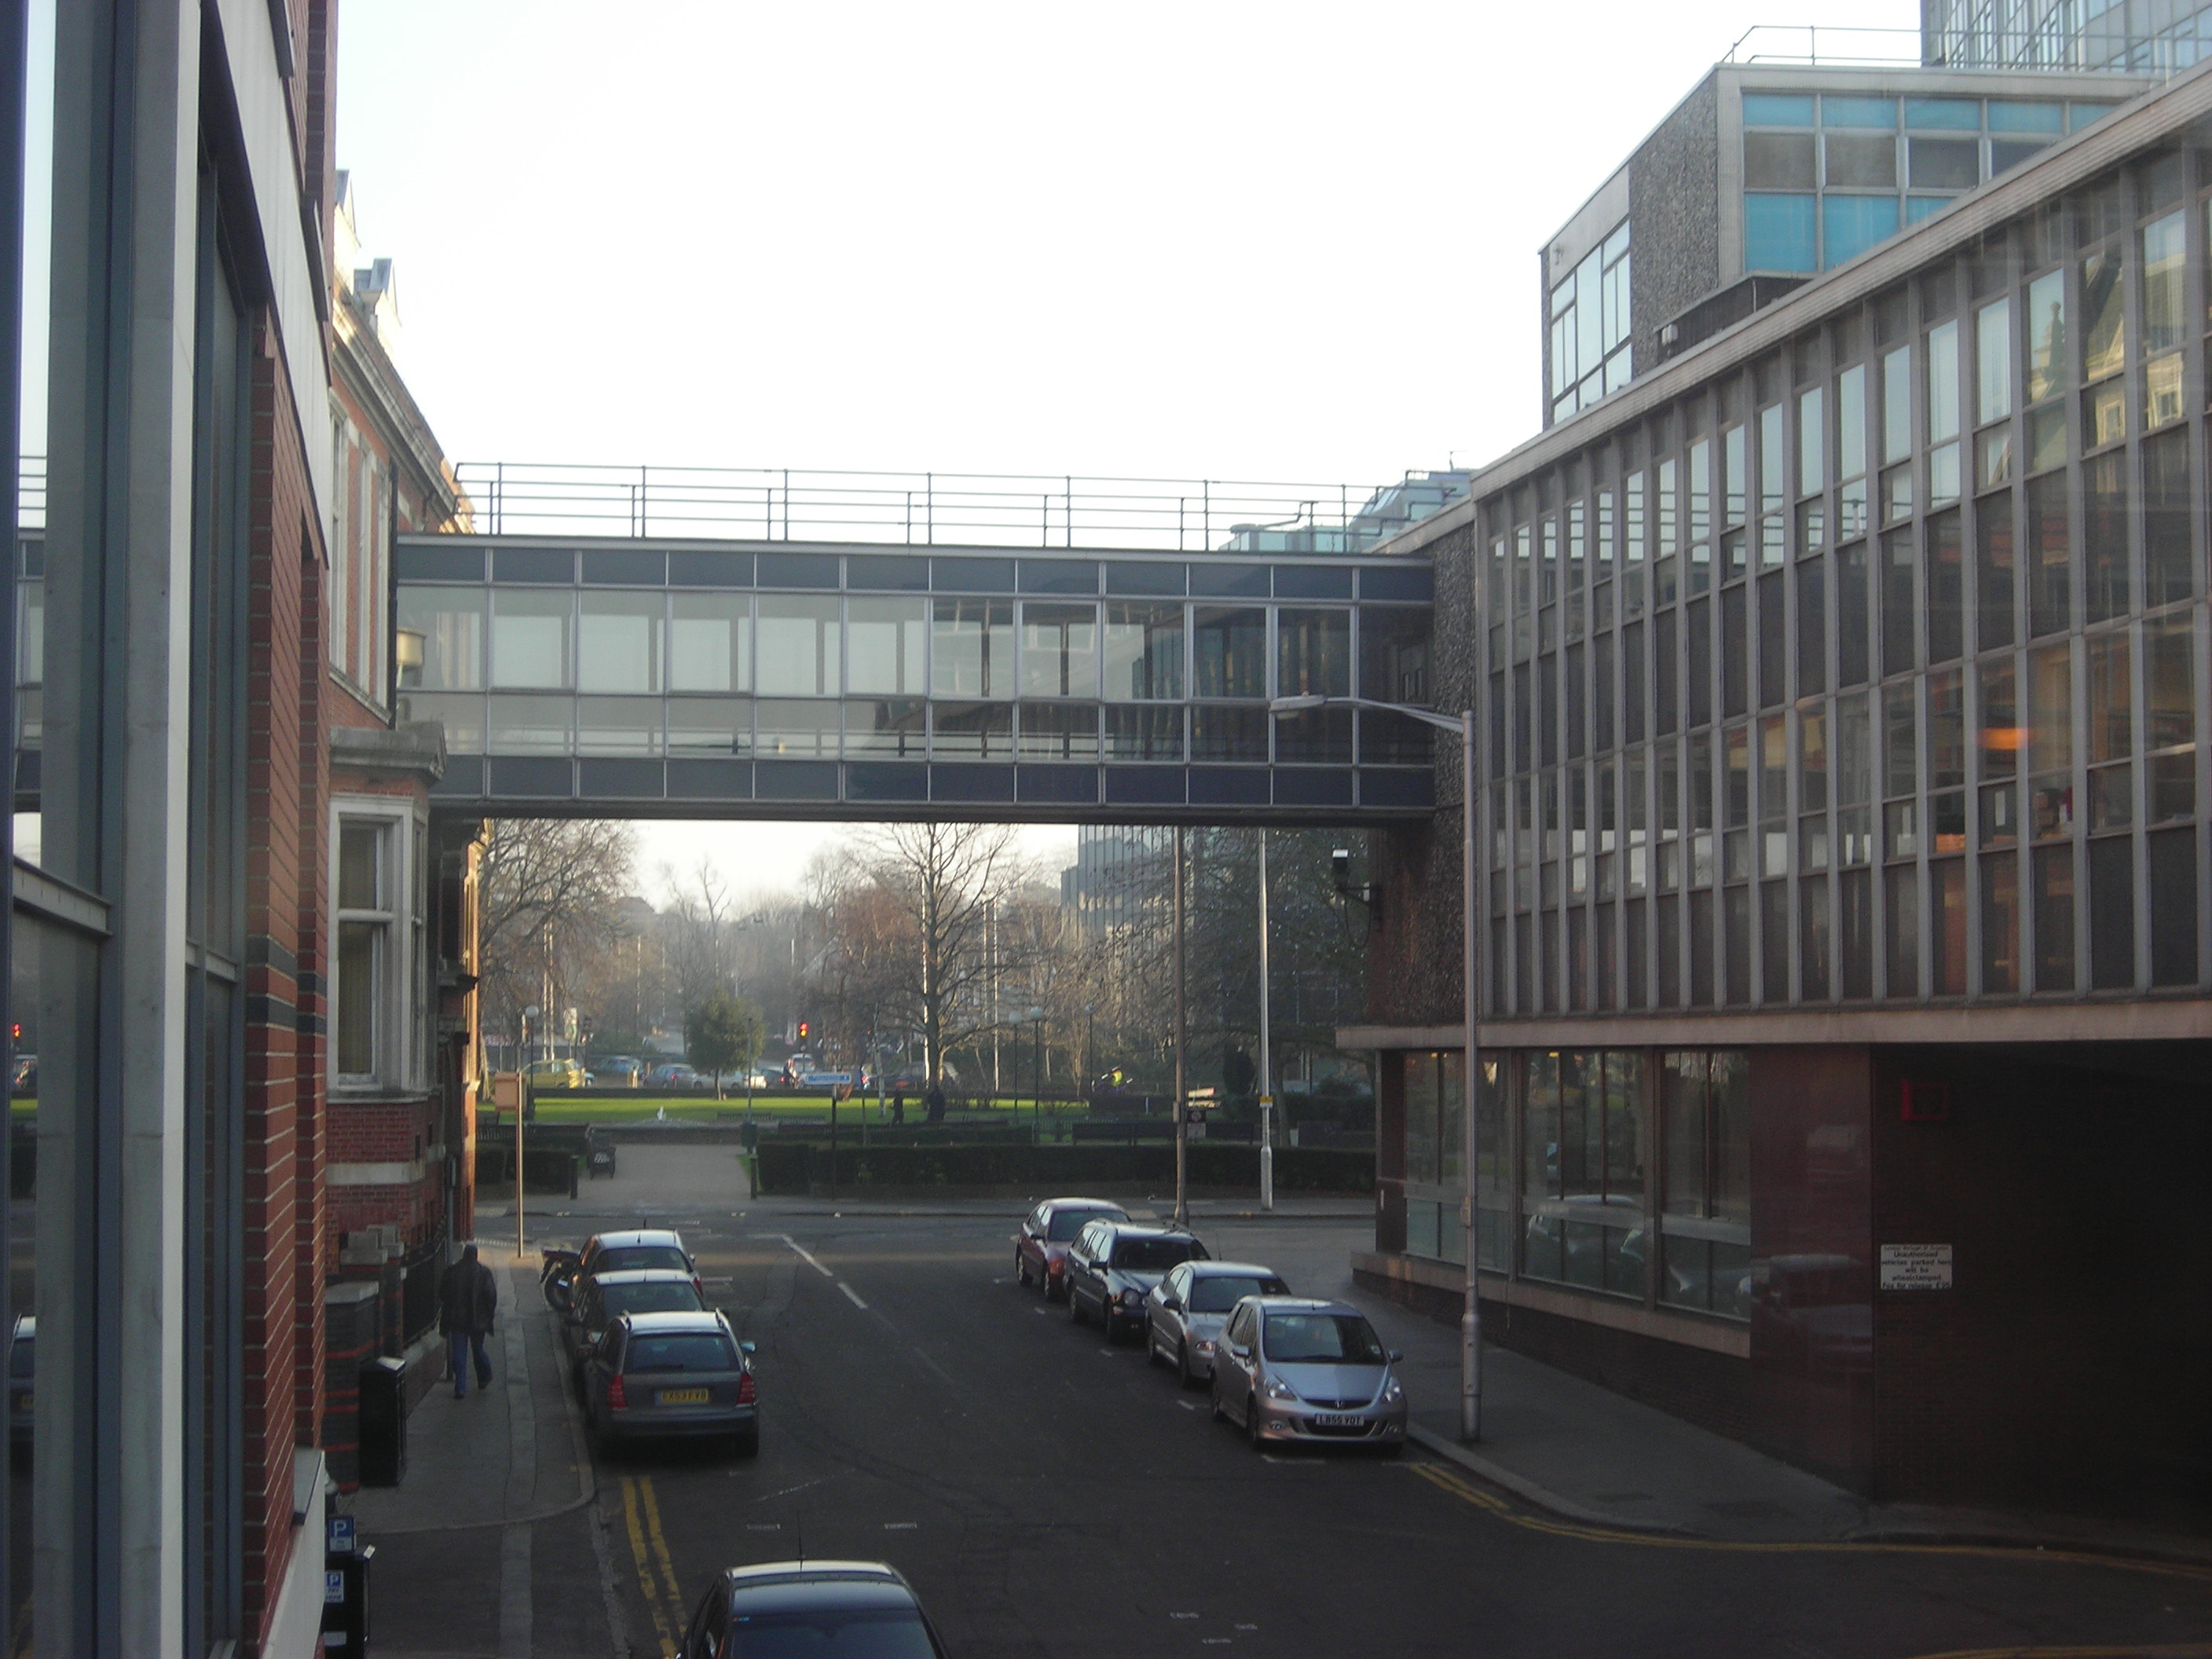 File:Bridge from Croydon Town Hall to Tabener House from Central Library.JPG - Wikimedia Commons